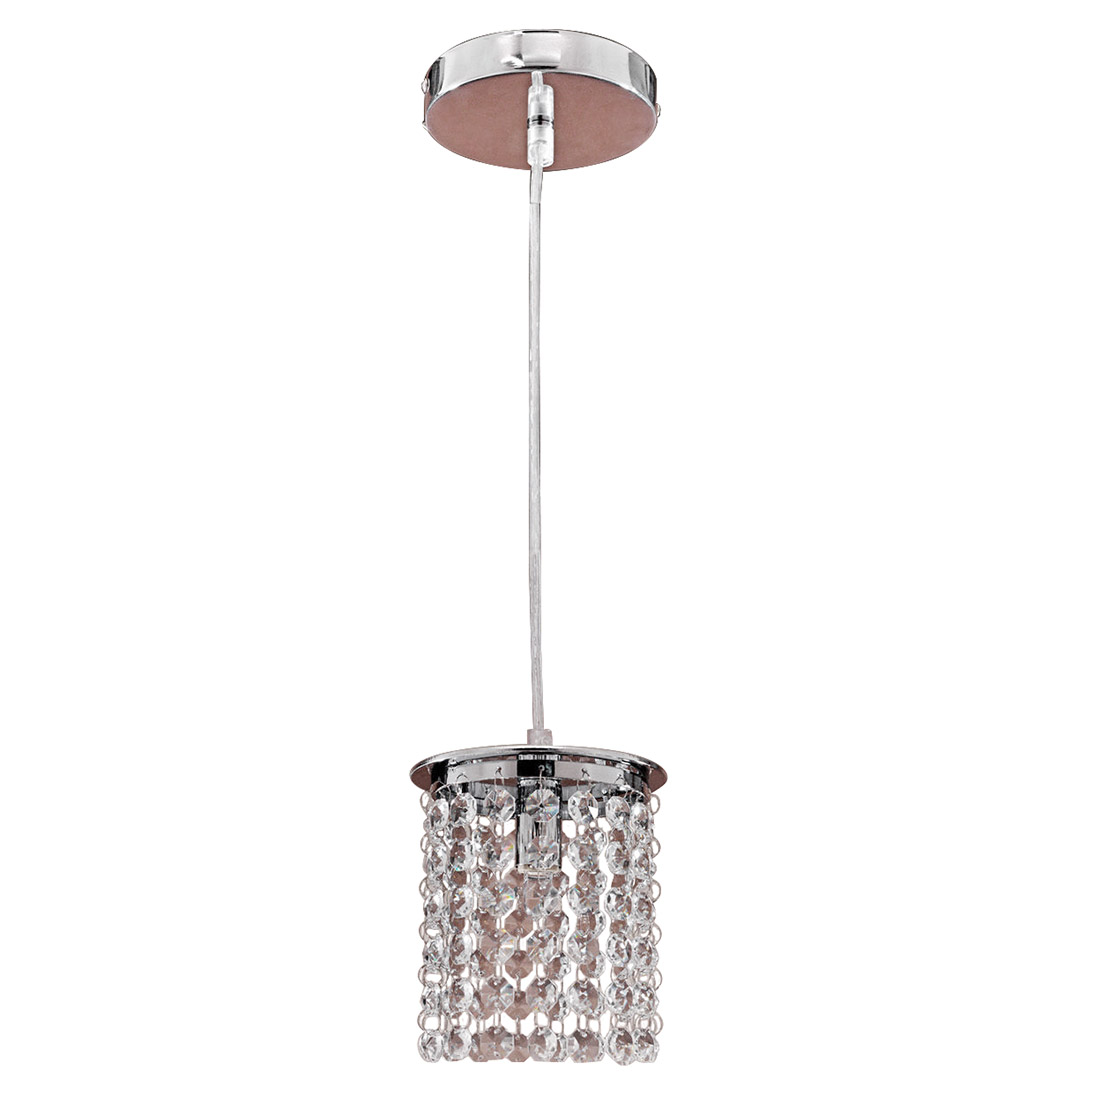 Crystal Ceiling Light Modern Chandelier Pendant Kitchen